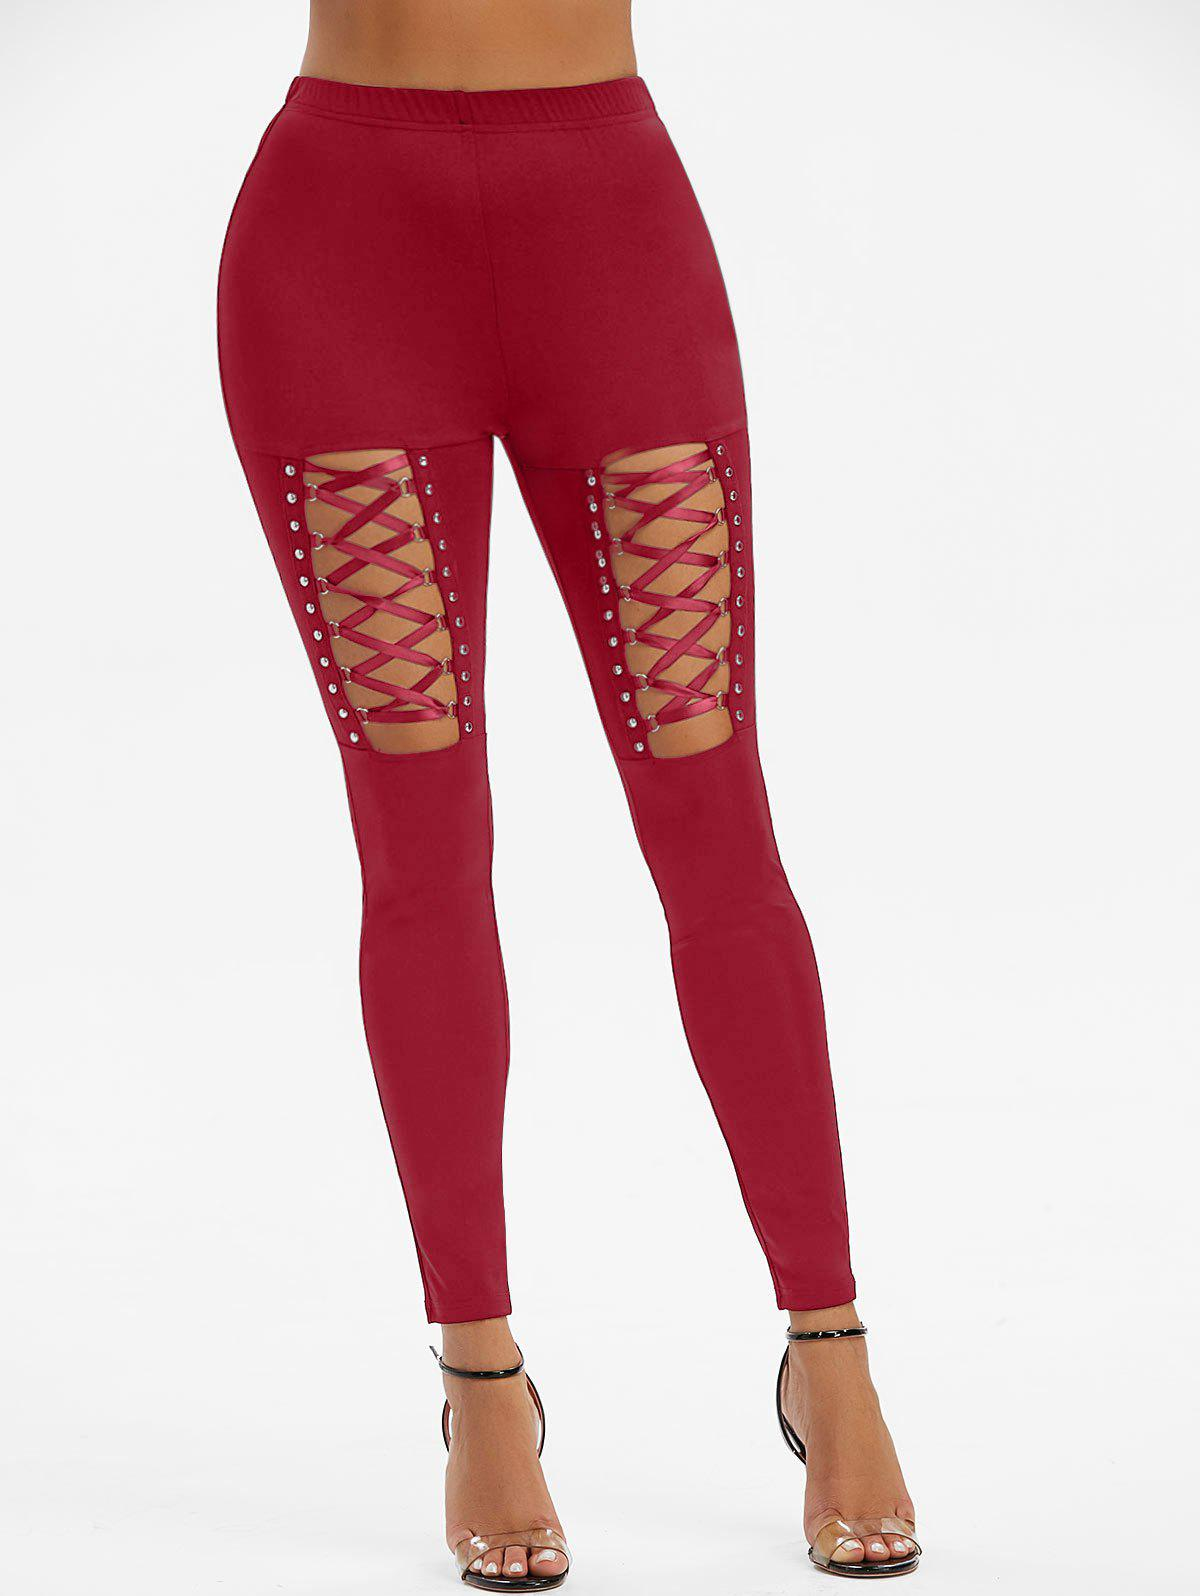 Rivet Detail Lace-up Gothic Leggings - RED WINE L